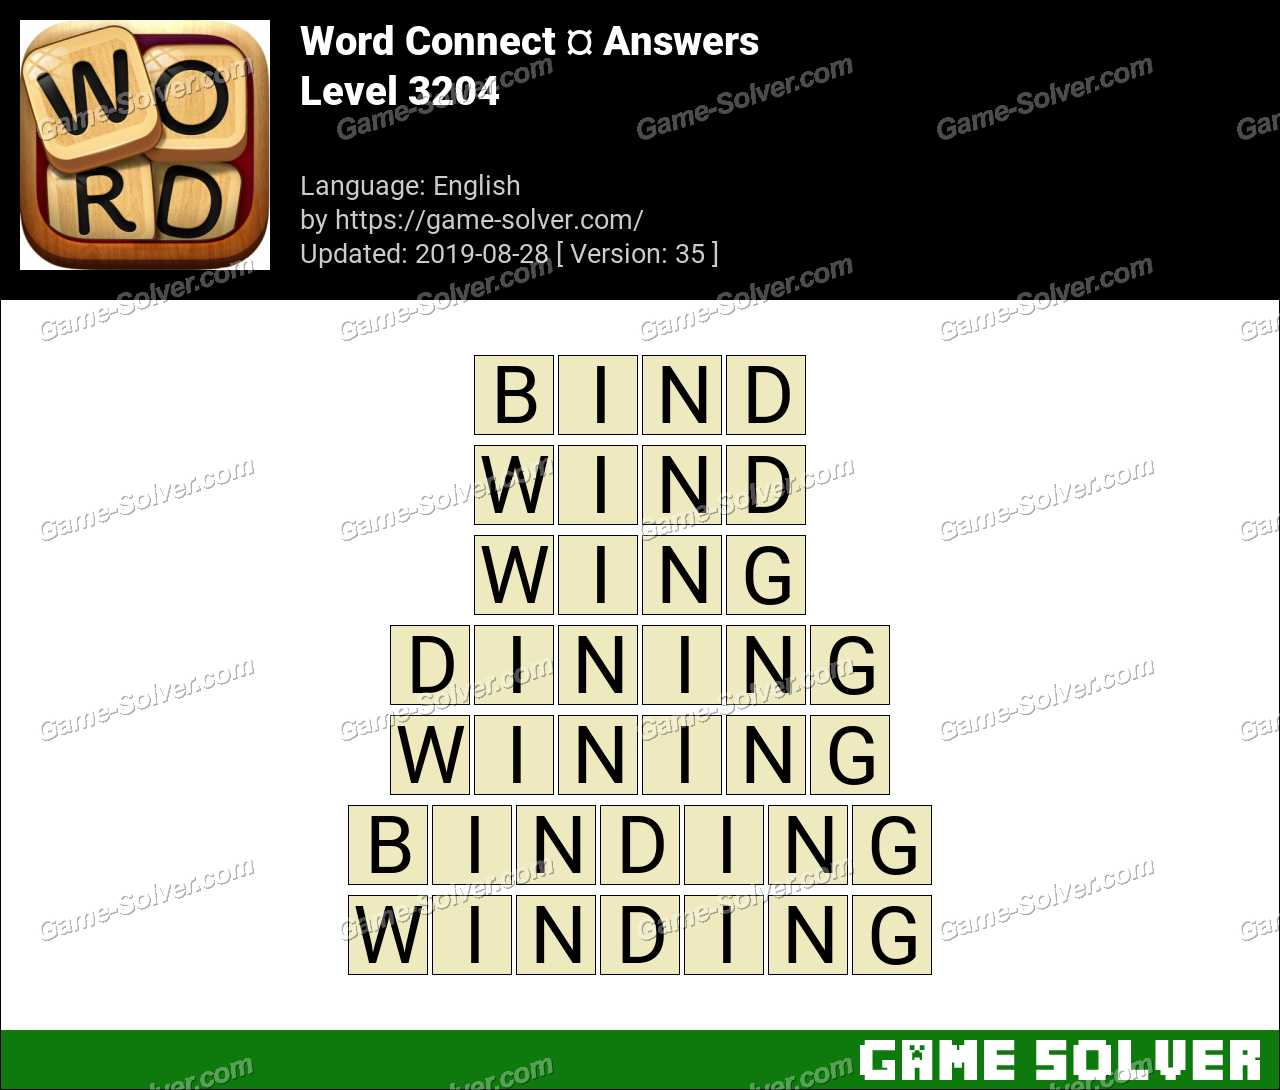 Word Connect Level 3204 Answers